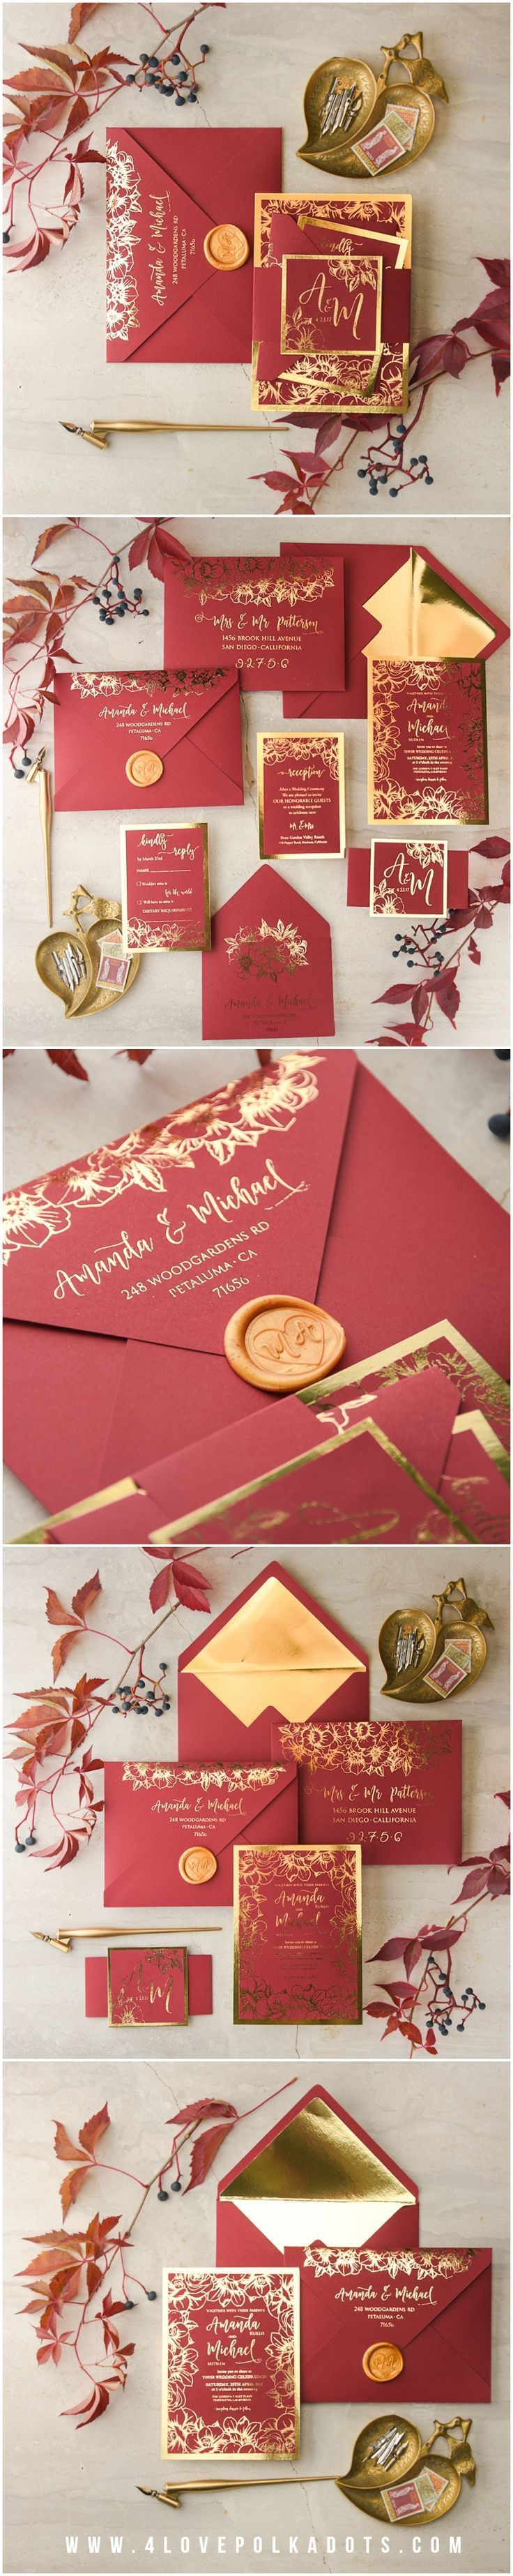 WEDDING INVITATIONS glitter | Wedding, Elegant wedding invitations ...